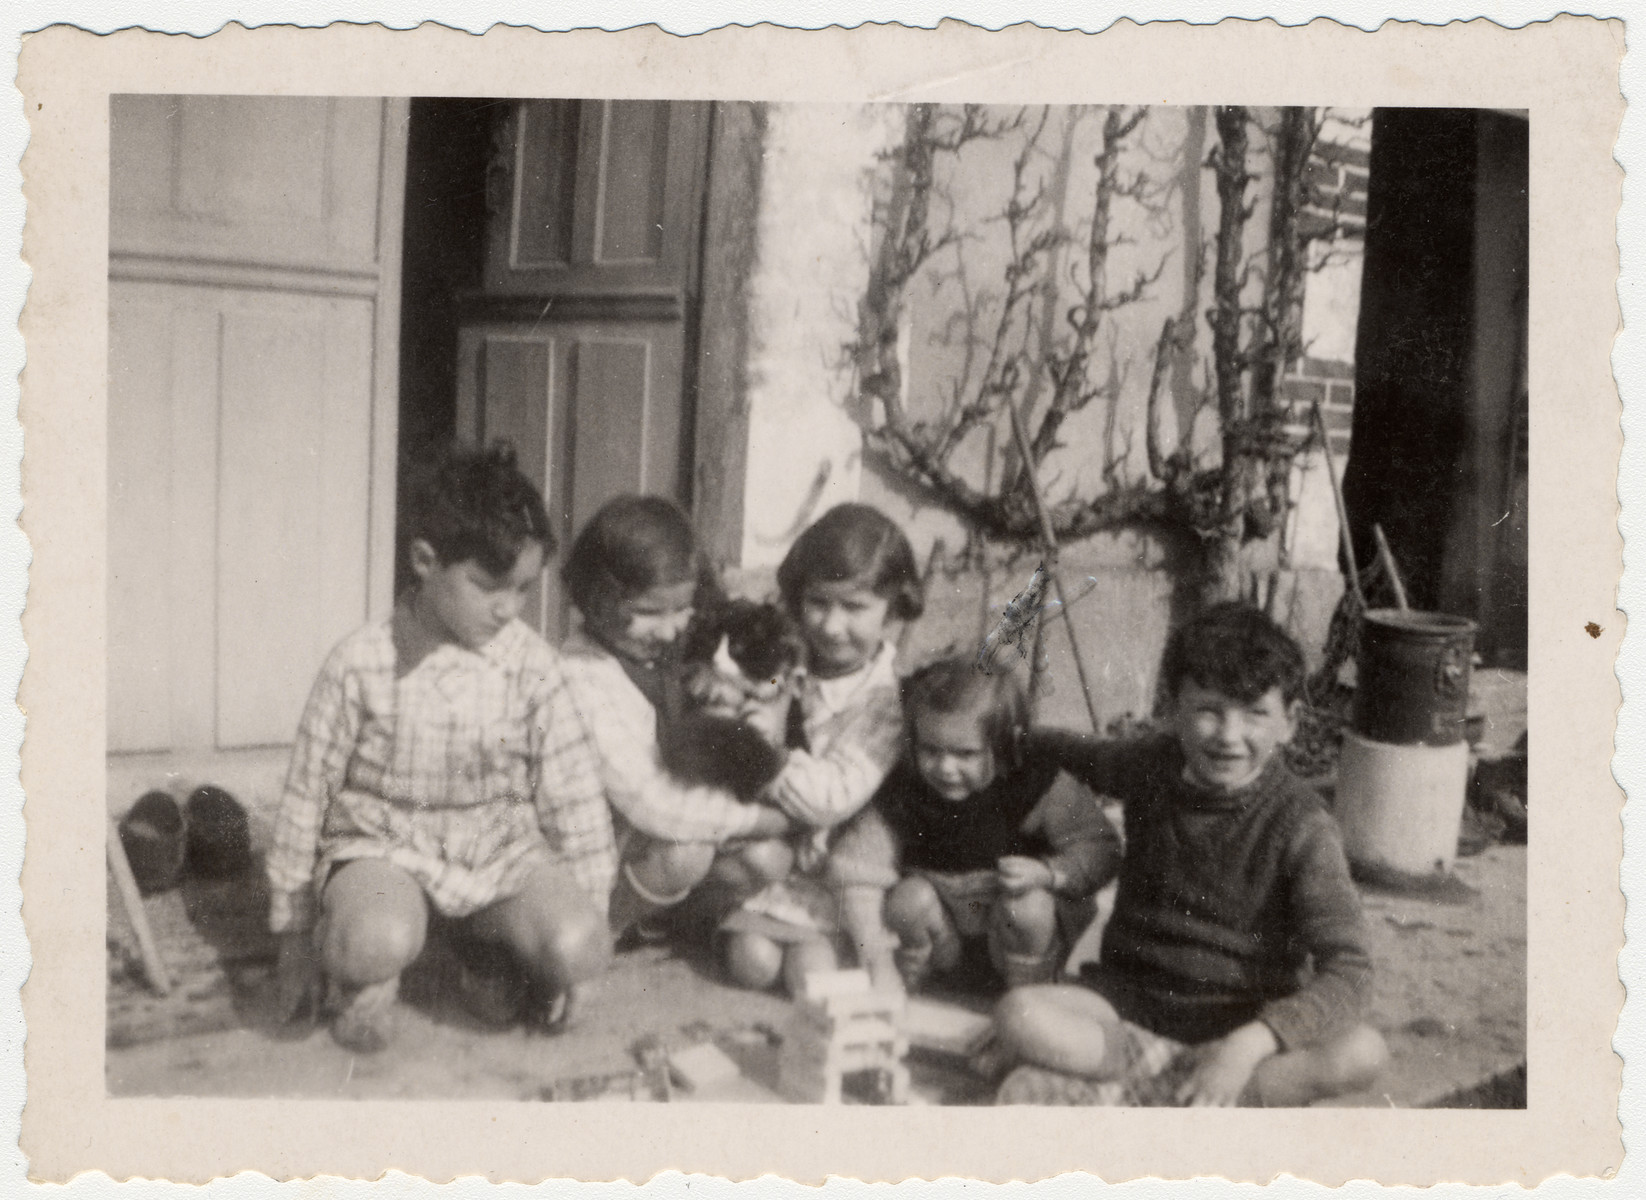 Steven Simon at left with another Jewish child at right playing with the three daughters of a Quaker staff family in front of a Quaker residence, Moulin de la Ferriere, Noce, Normandy in early 1040, after being evacuated from Paris because of German bombing.